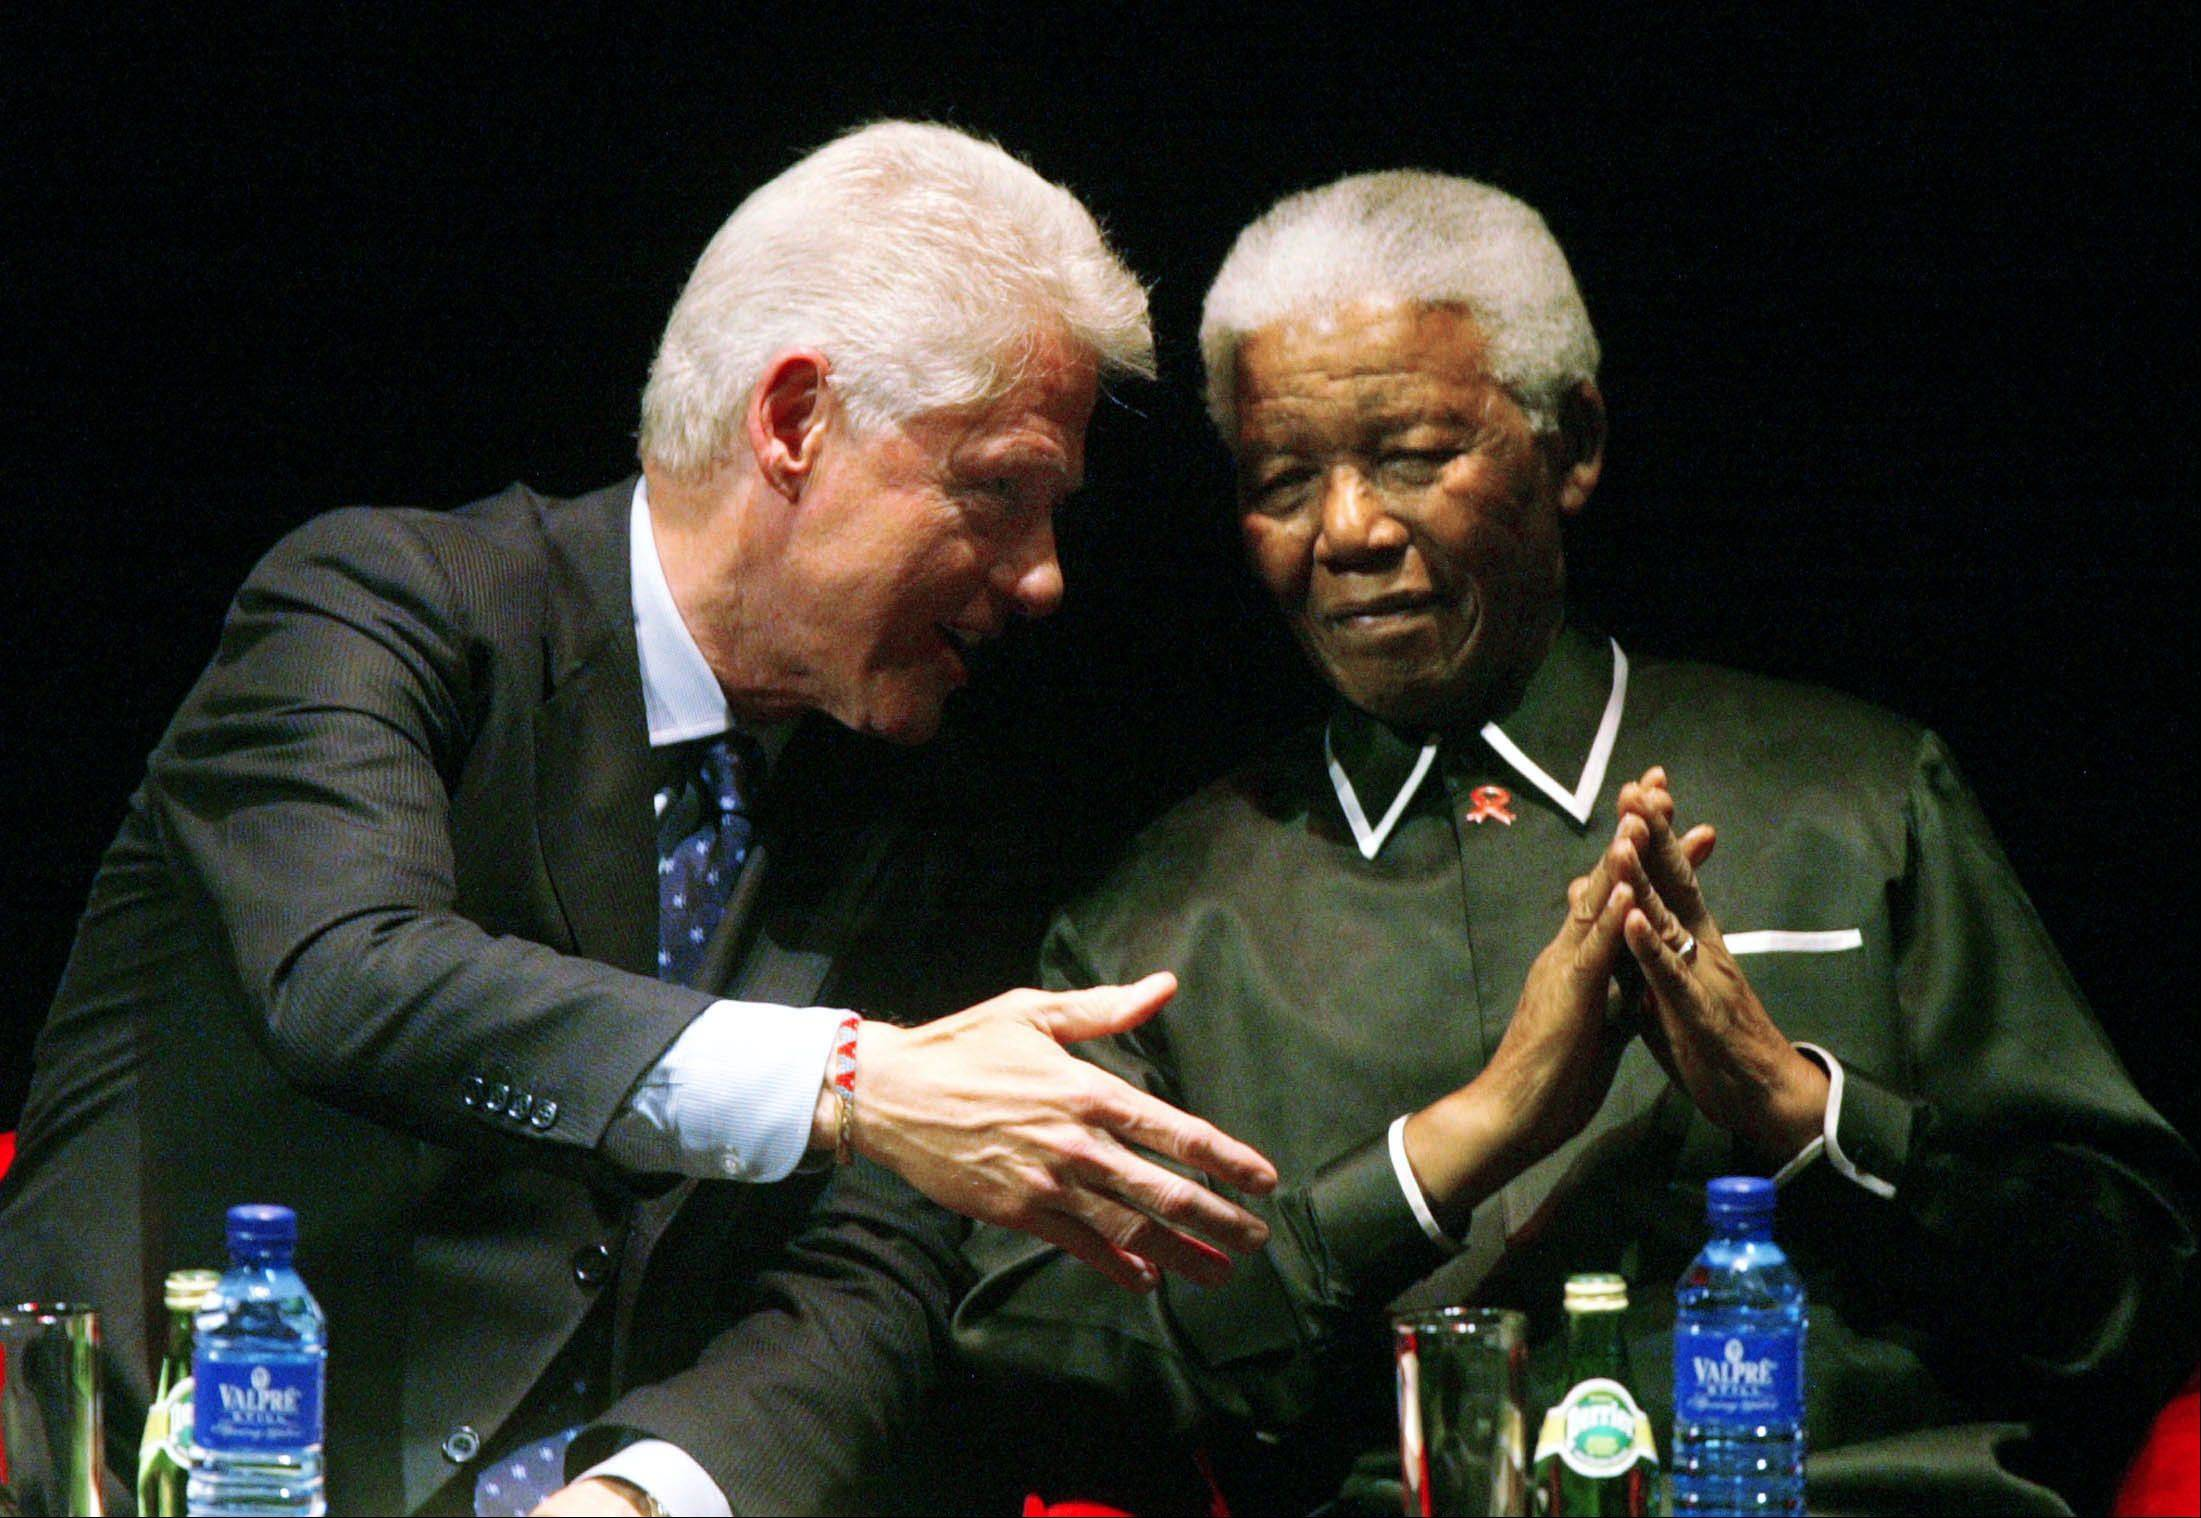 Former South African President Nelson Mandela, right, with former U.S. President Bill Clinton, left, during the Nelson Mandela Annual Lecture Tuesday, July 19, 2005.